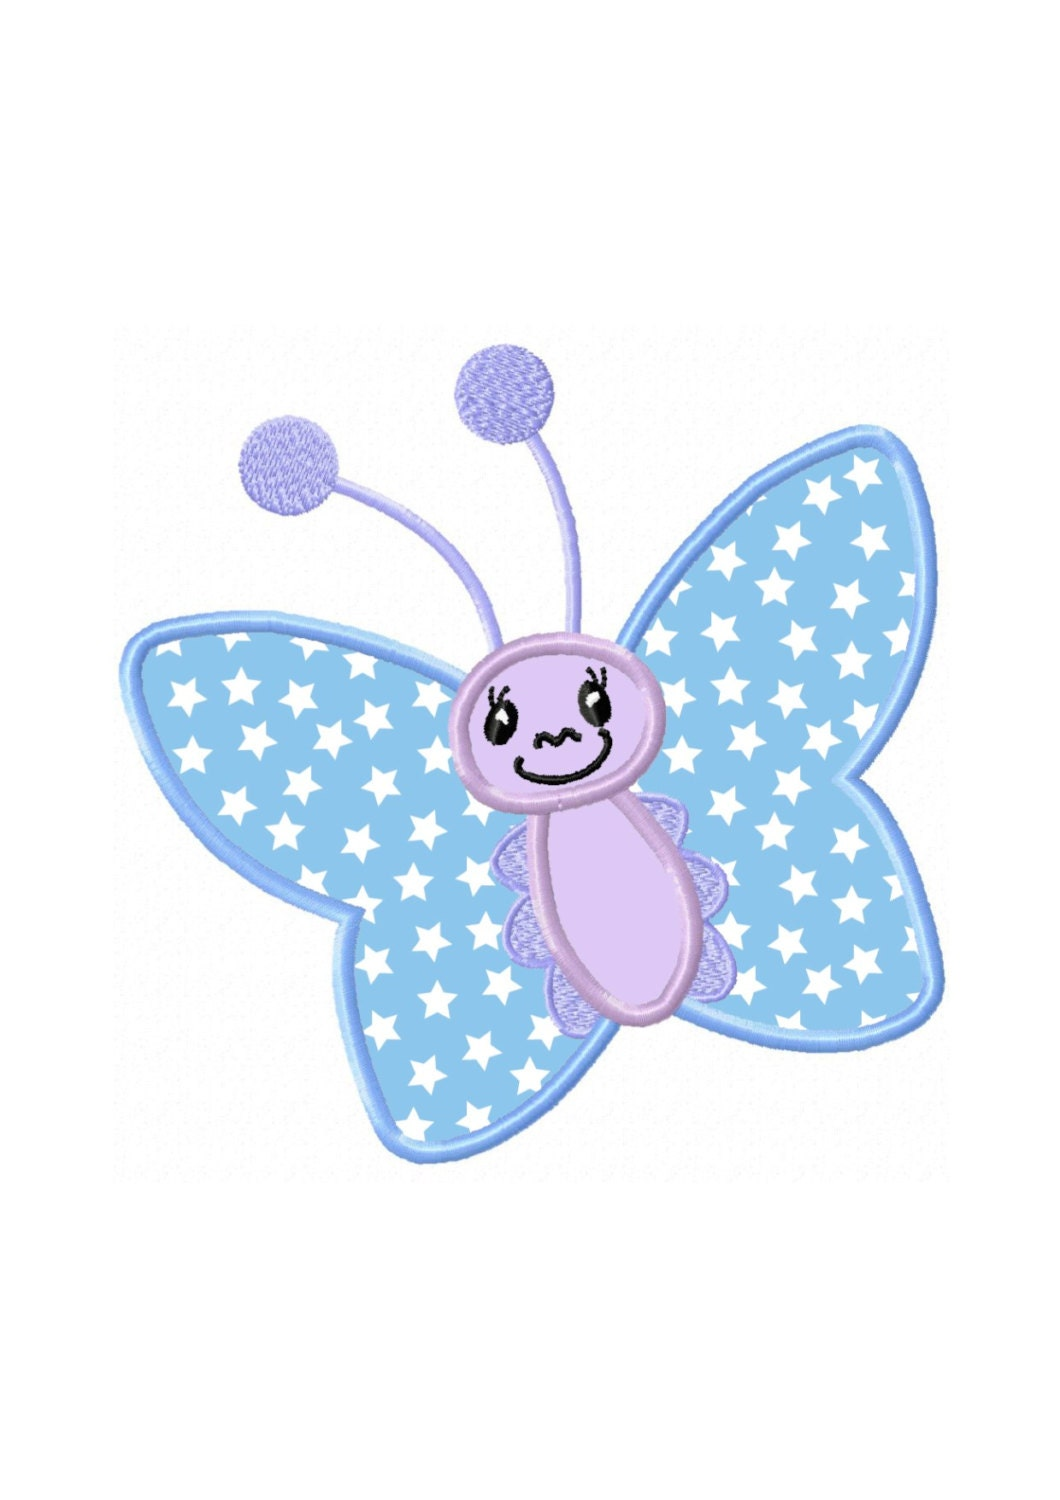 Butterfly applique machine embroidery design n